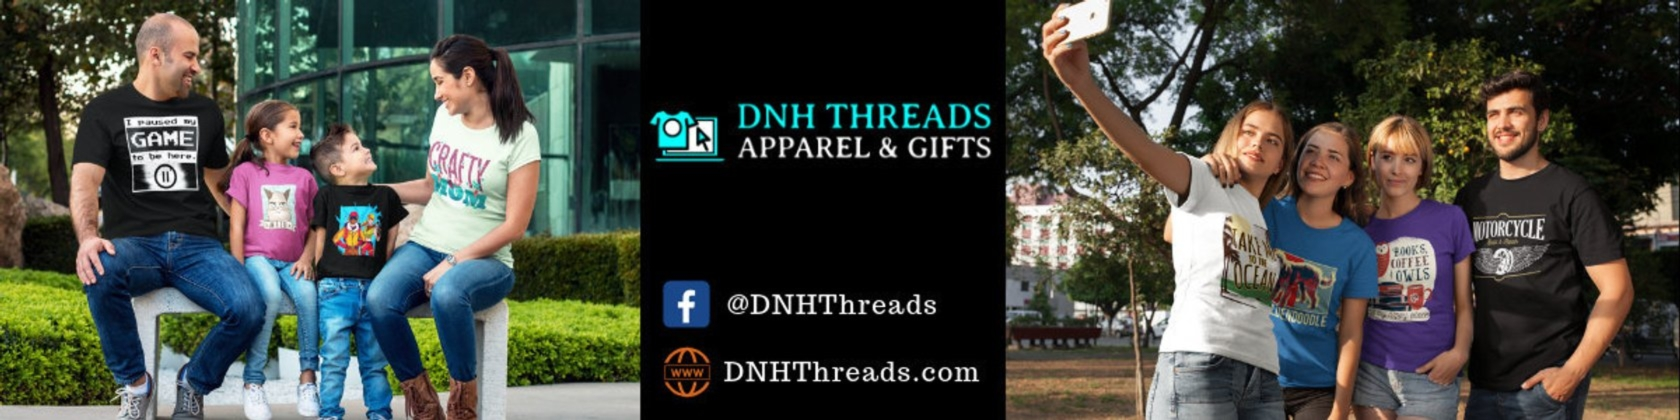 Showroom - DNH Threads